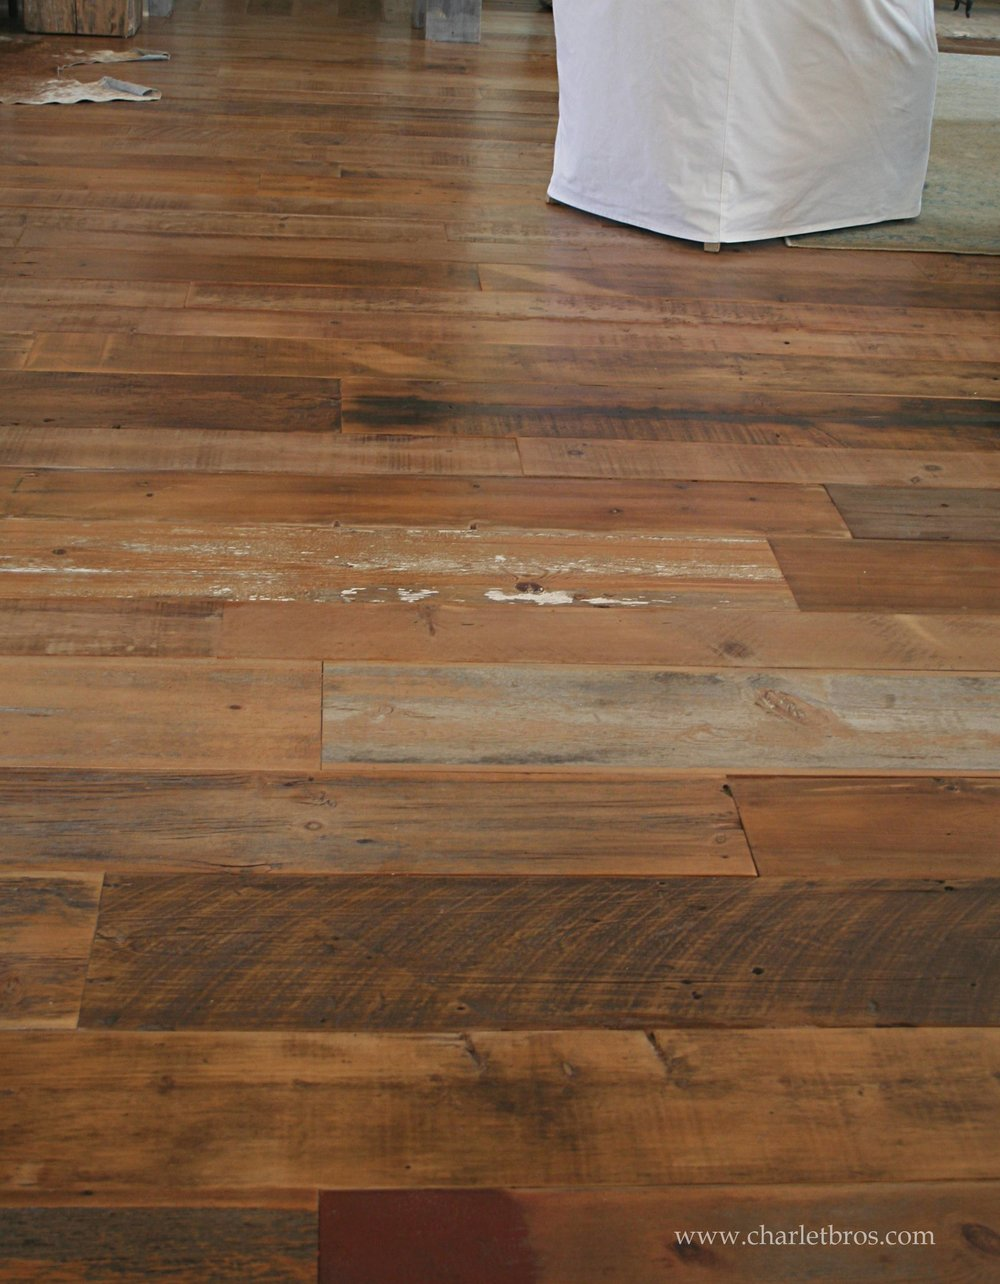 Clairemont antique wood floor T.jpg